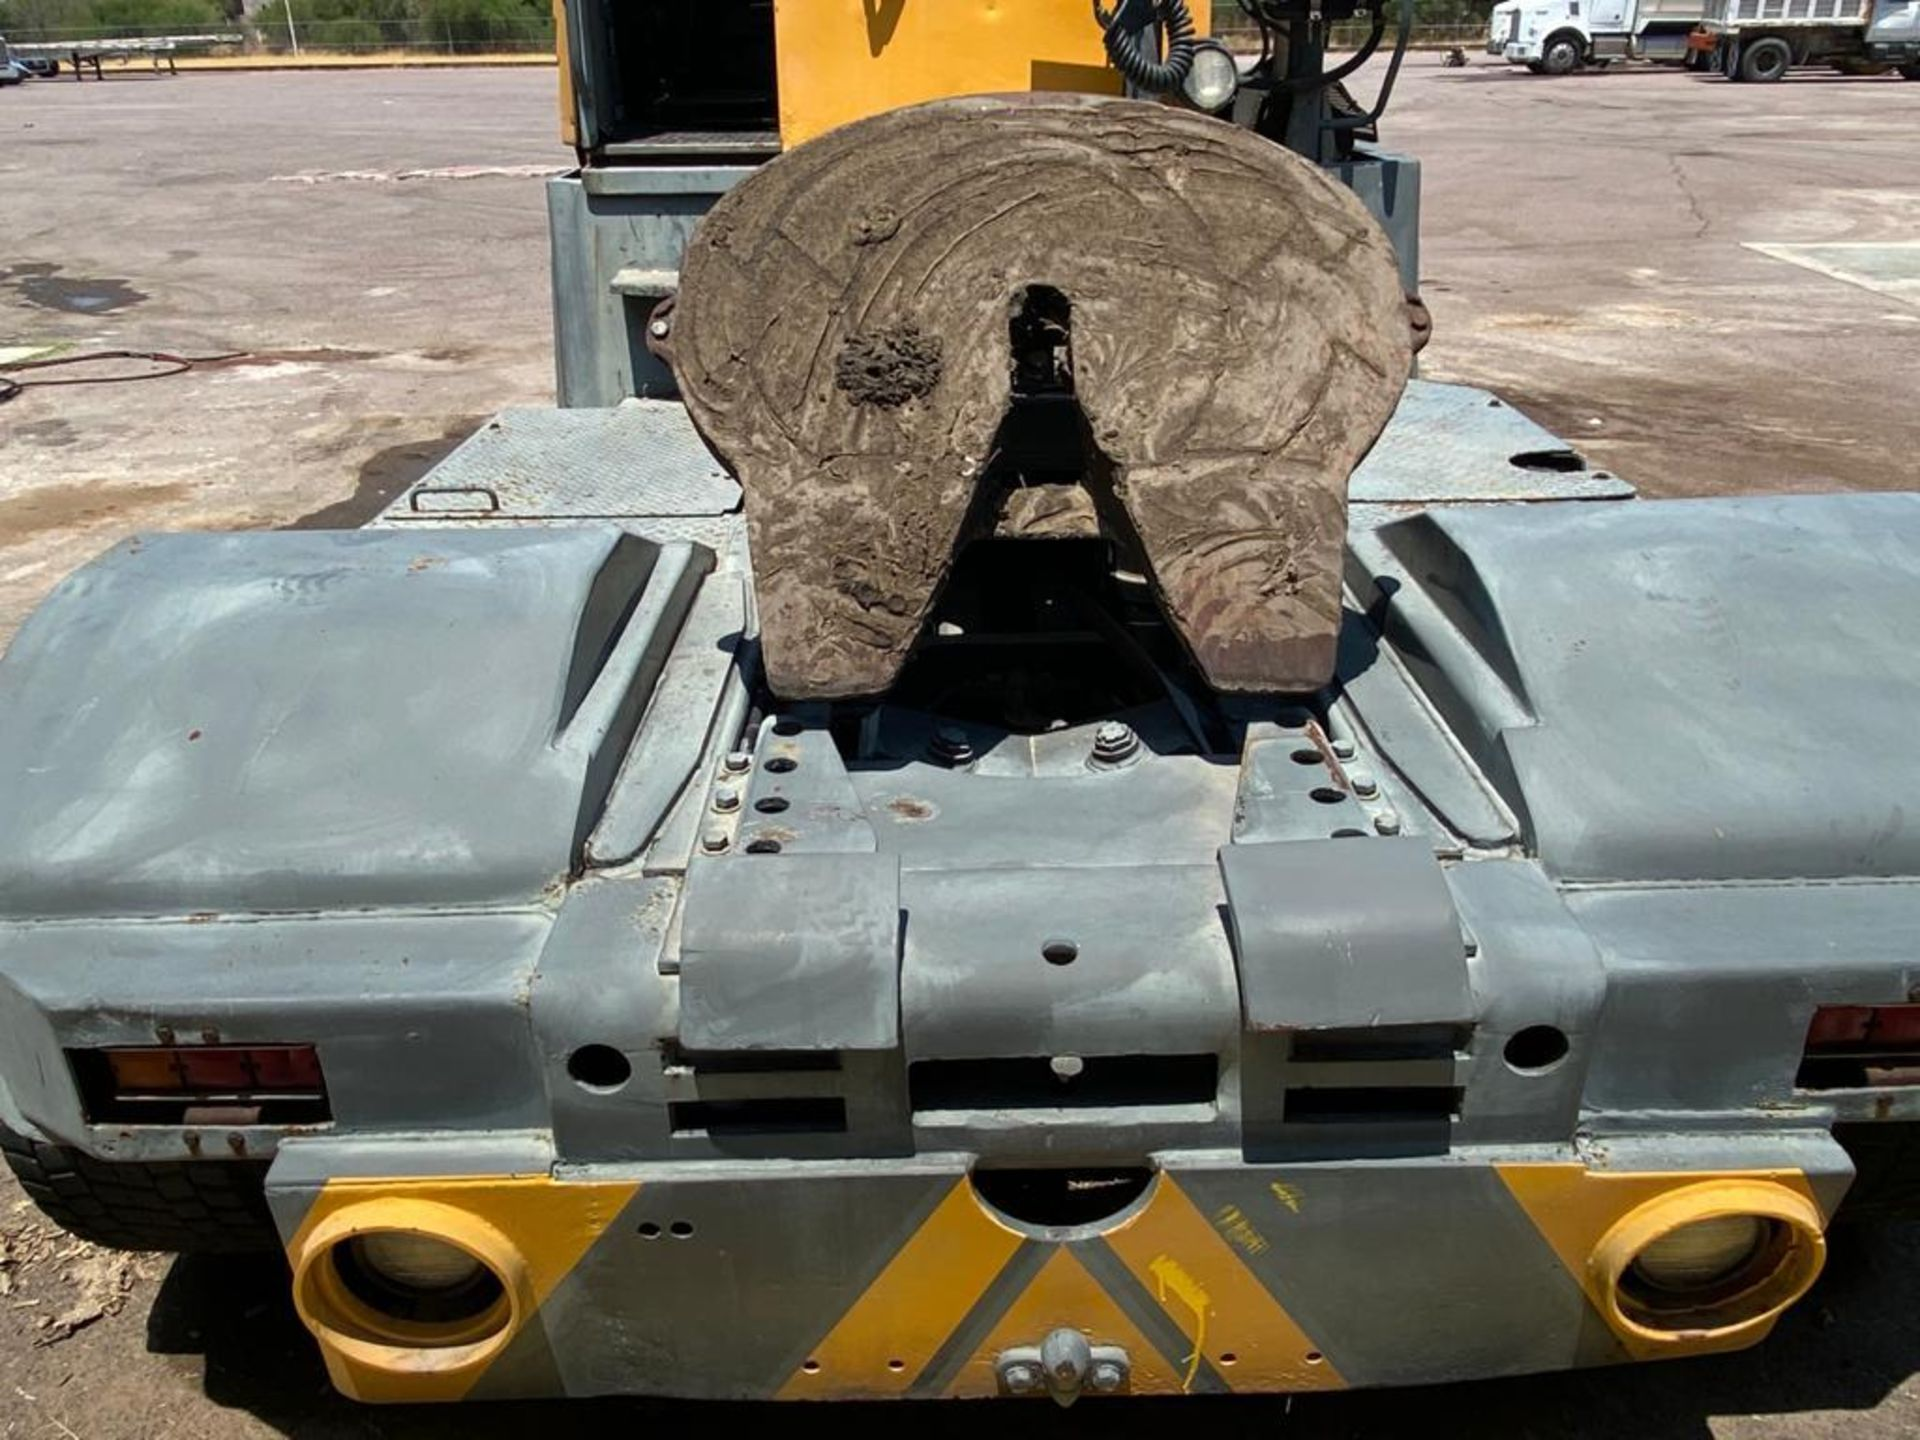 Terberg Capacity 2002 Terminal Tractor, automatic transmission, with Volvo motor - Image 13 of 57